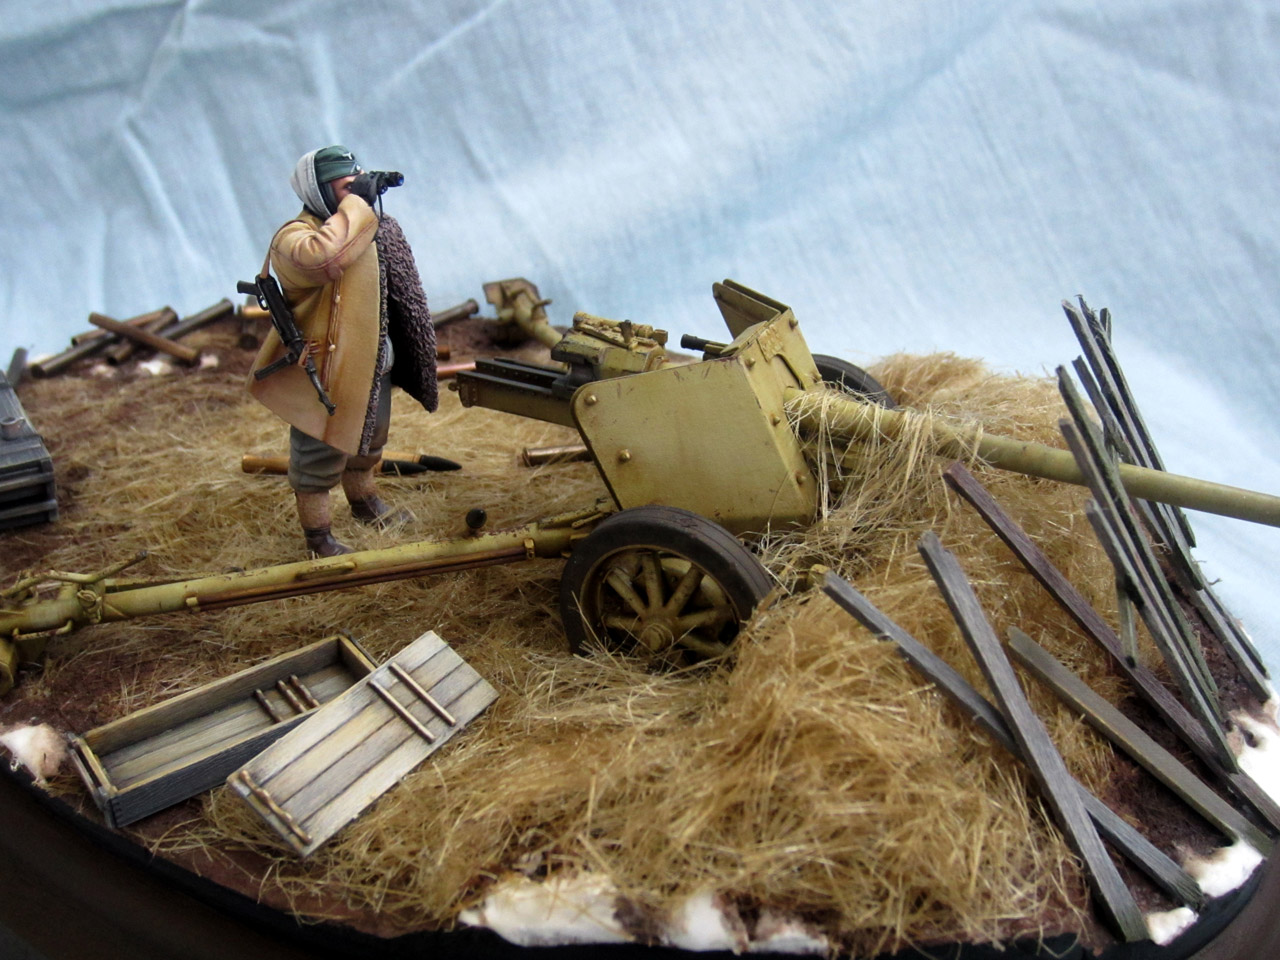 Dioramas and Vignettes: The Silence, photo #3